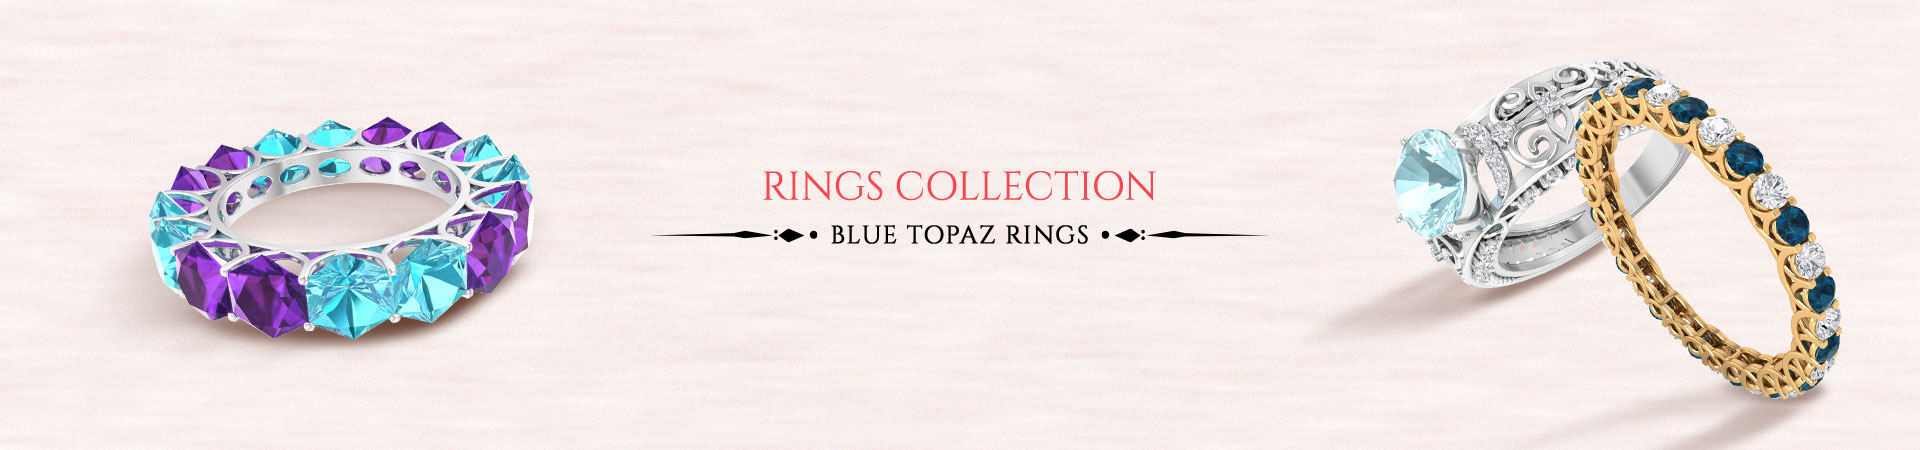 Blue Topaz Rings